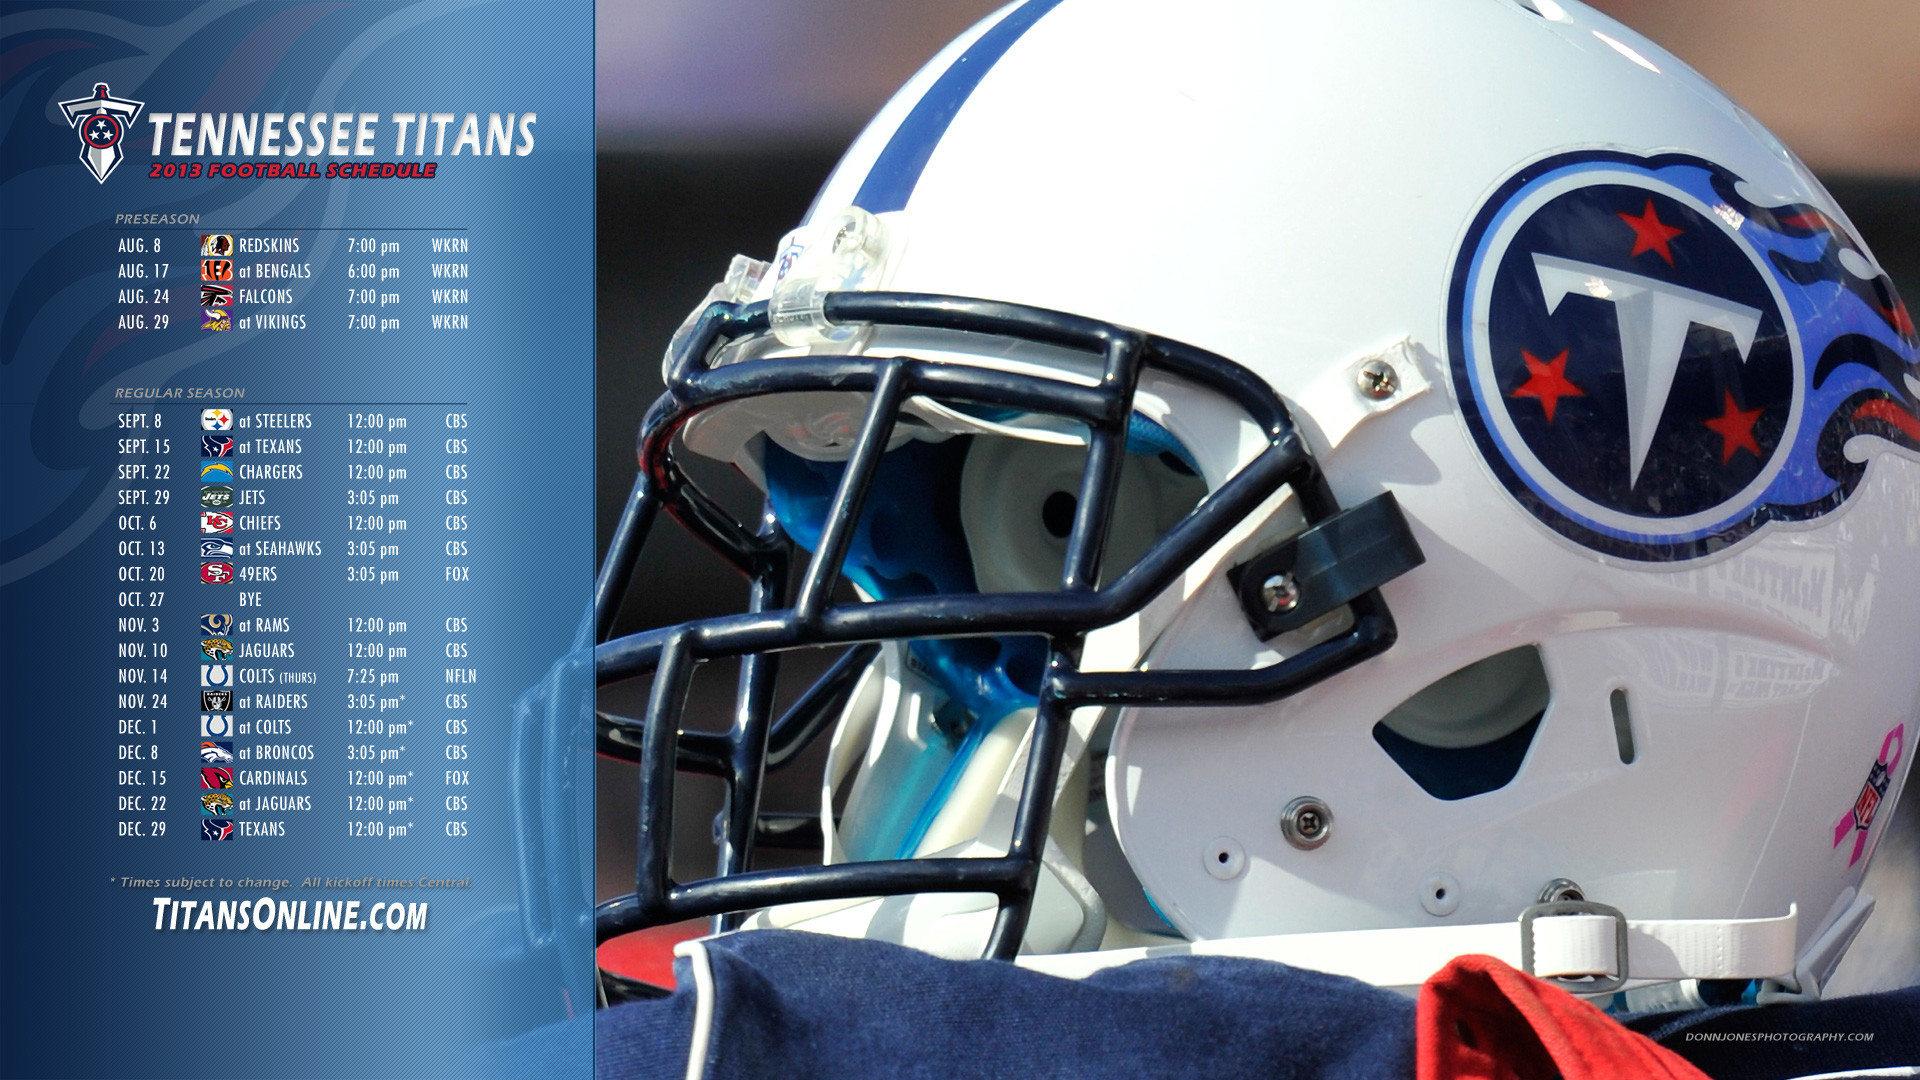 b6a59b50 Tennessee Titans Wallpaper (55+ images)